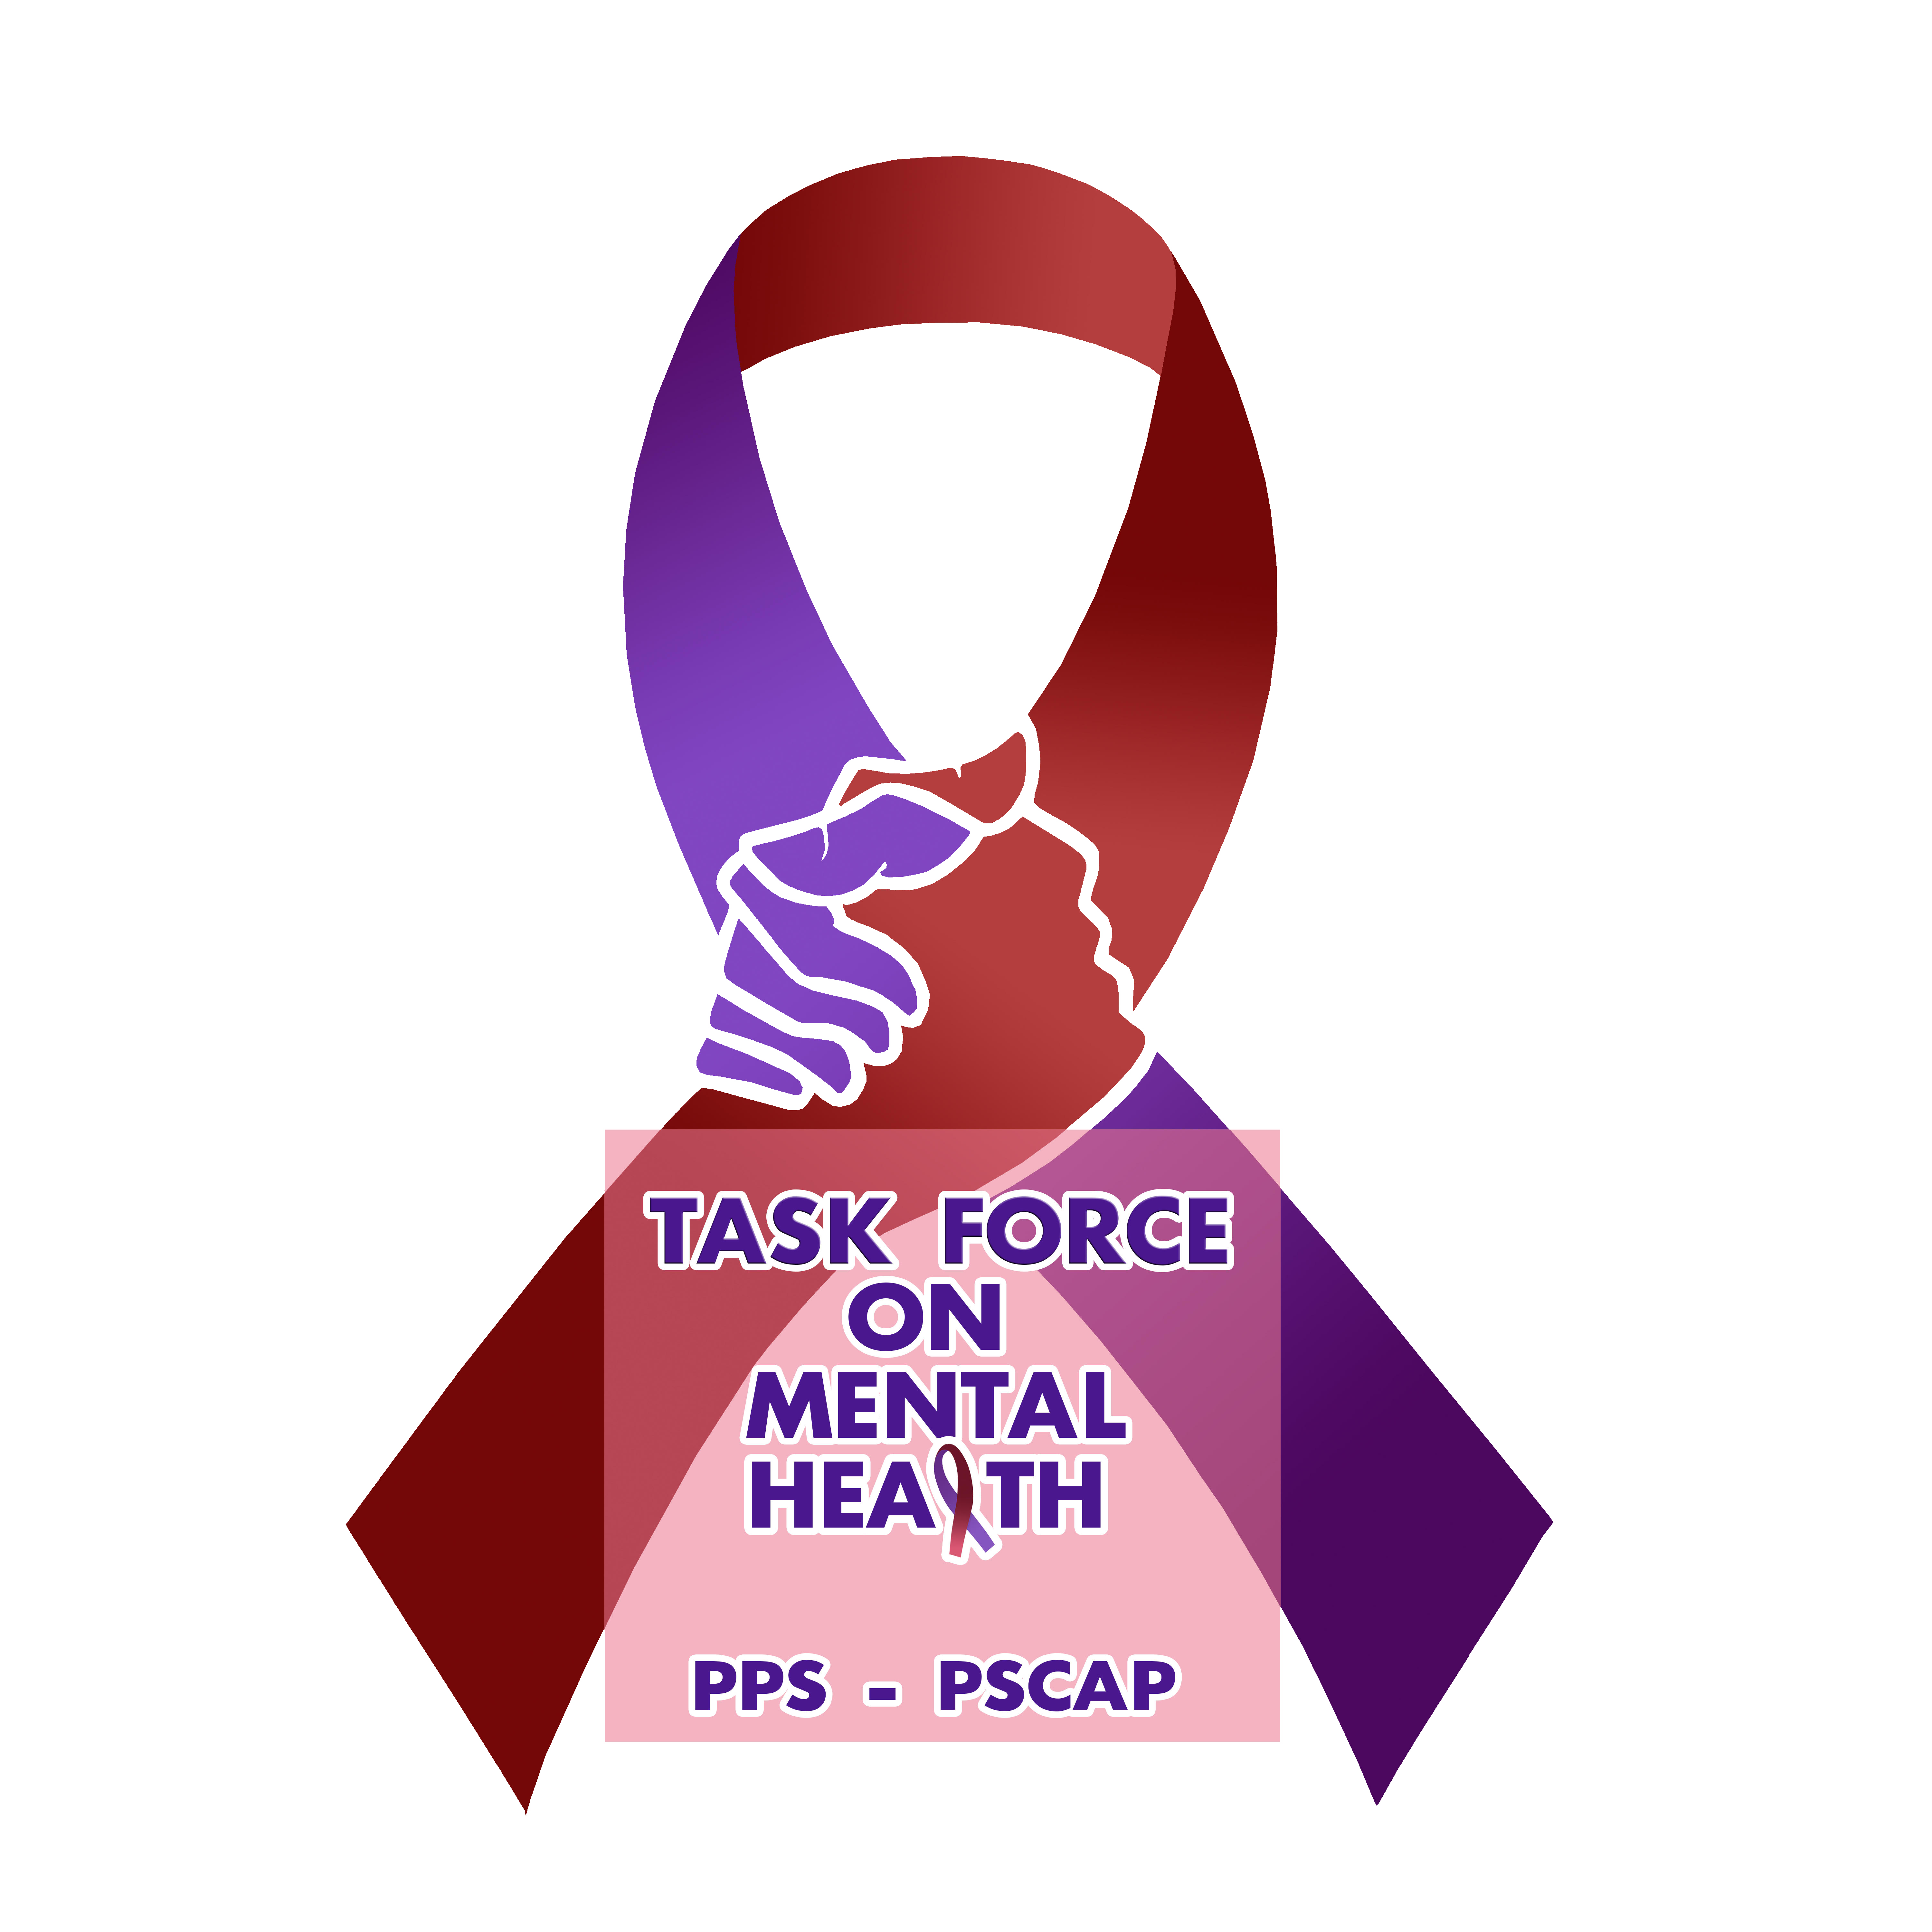 Task Force on Mental Health